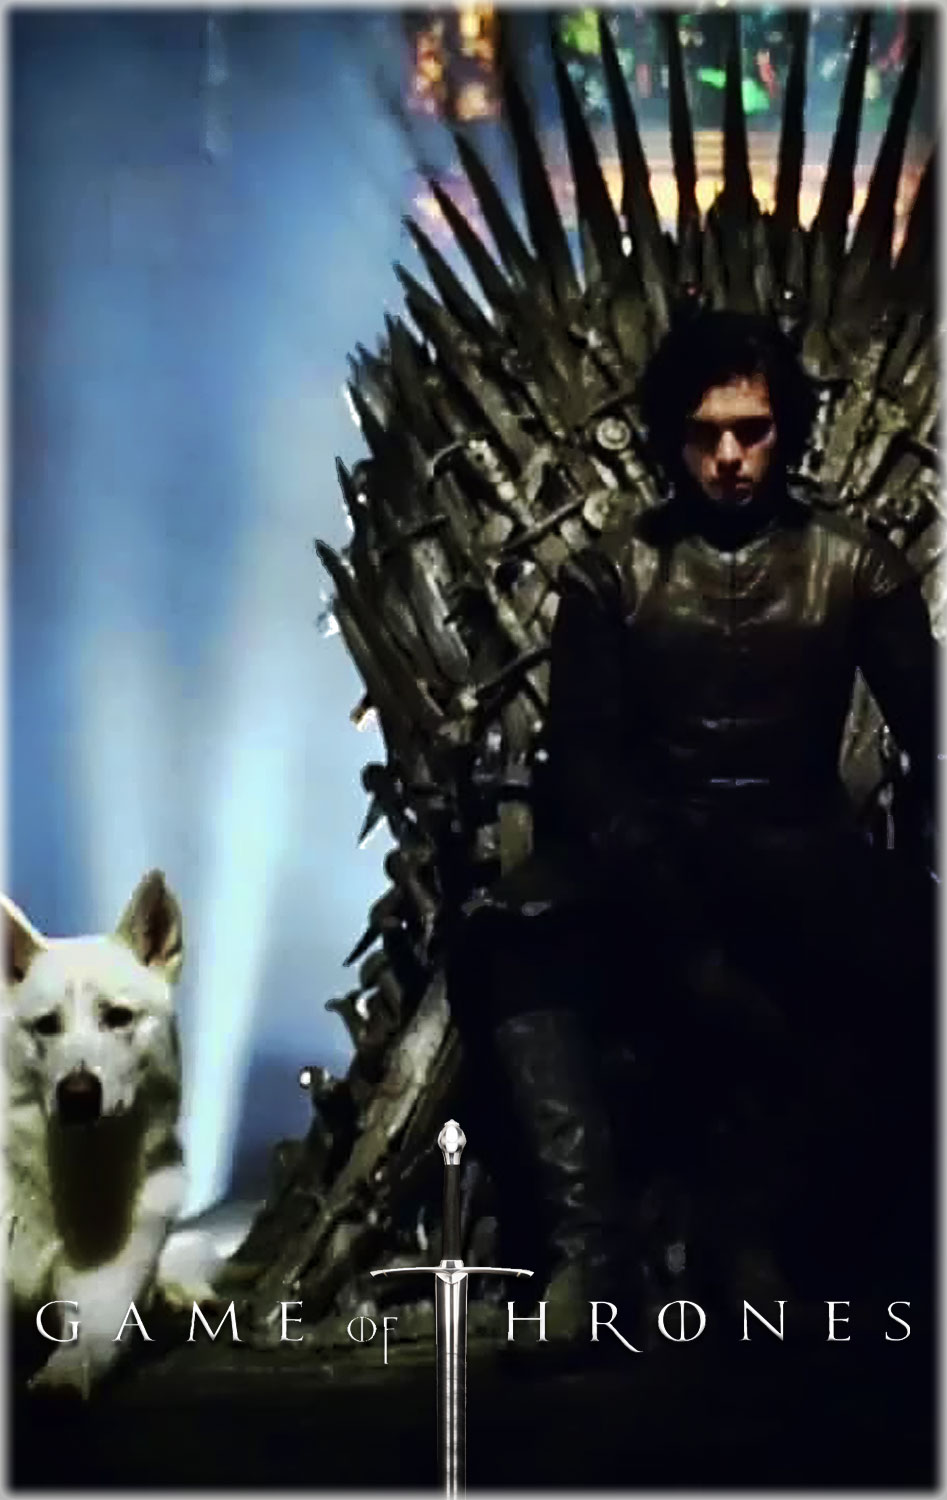 game of thrones season 2 episode 10 valar morghulis watch online